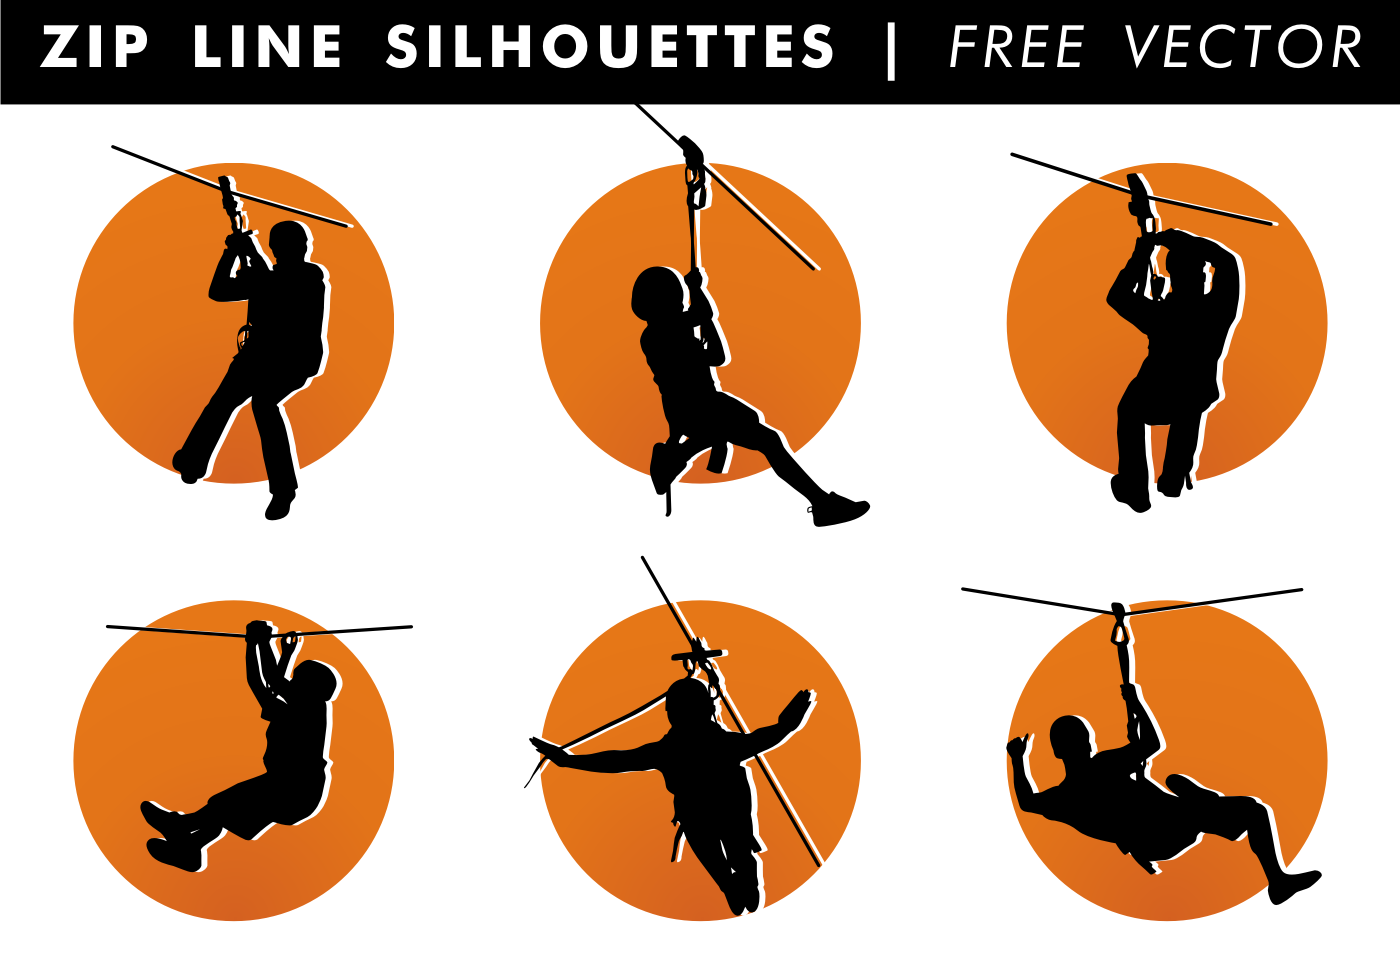 Vector Cartoon For Free Download About 5 514 Vector: Zip Line Silhouettes Vector